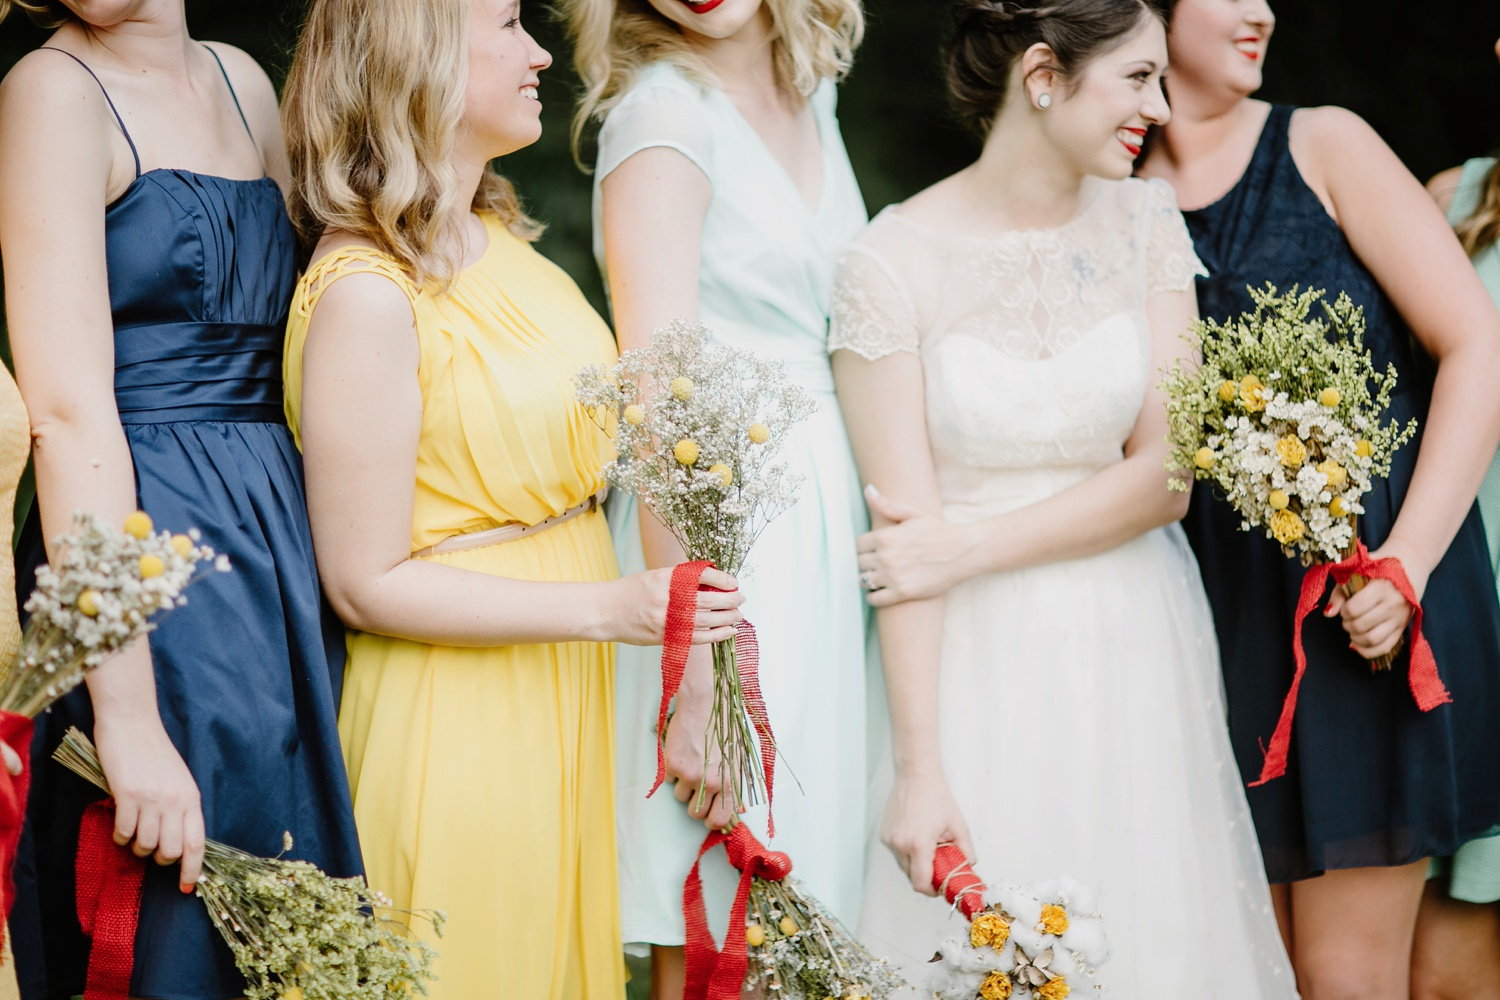 carnival themed wedding with different color bridesmaid dresses